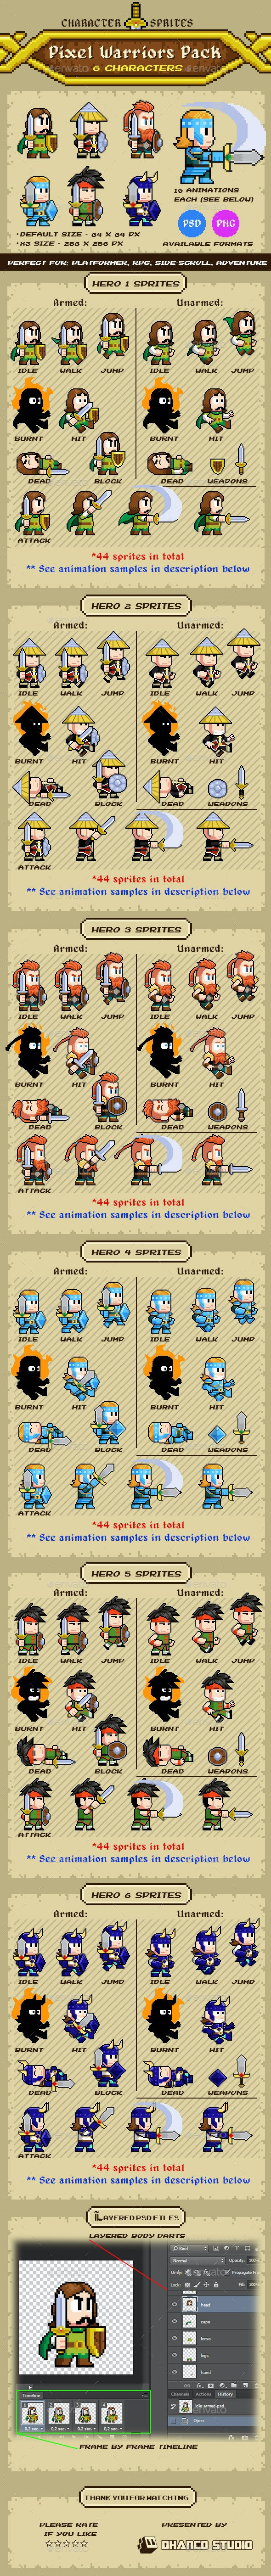 Pixel Warriors - 6 Characters Pack - Sprites Game Assets